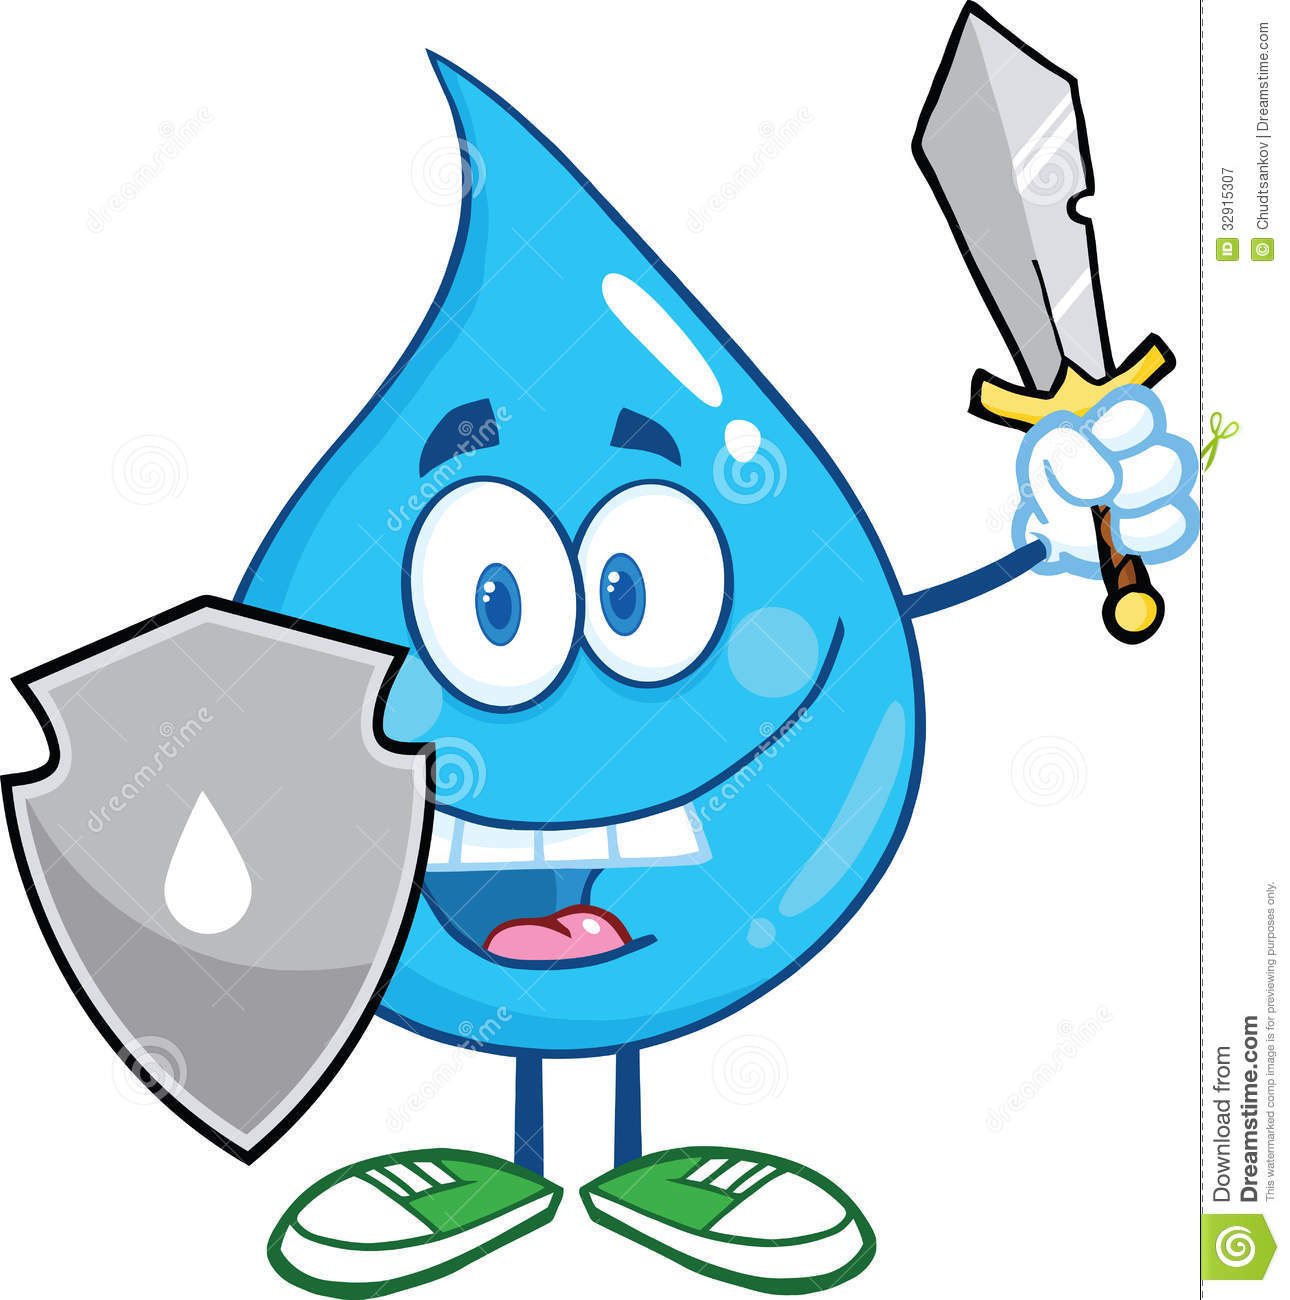 water drop cartoon mascot guarder with shield and sword water droplet clipart png water droplet clipart clear background